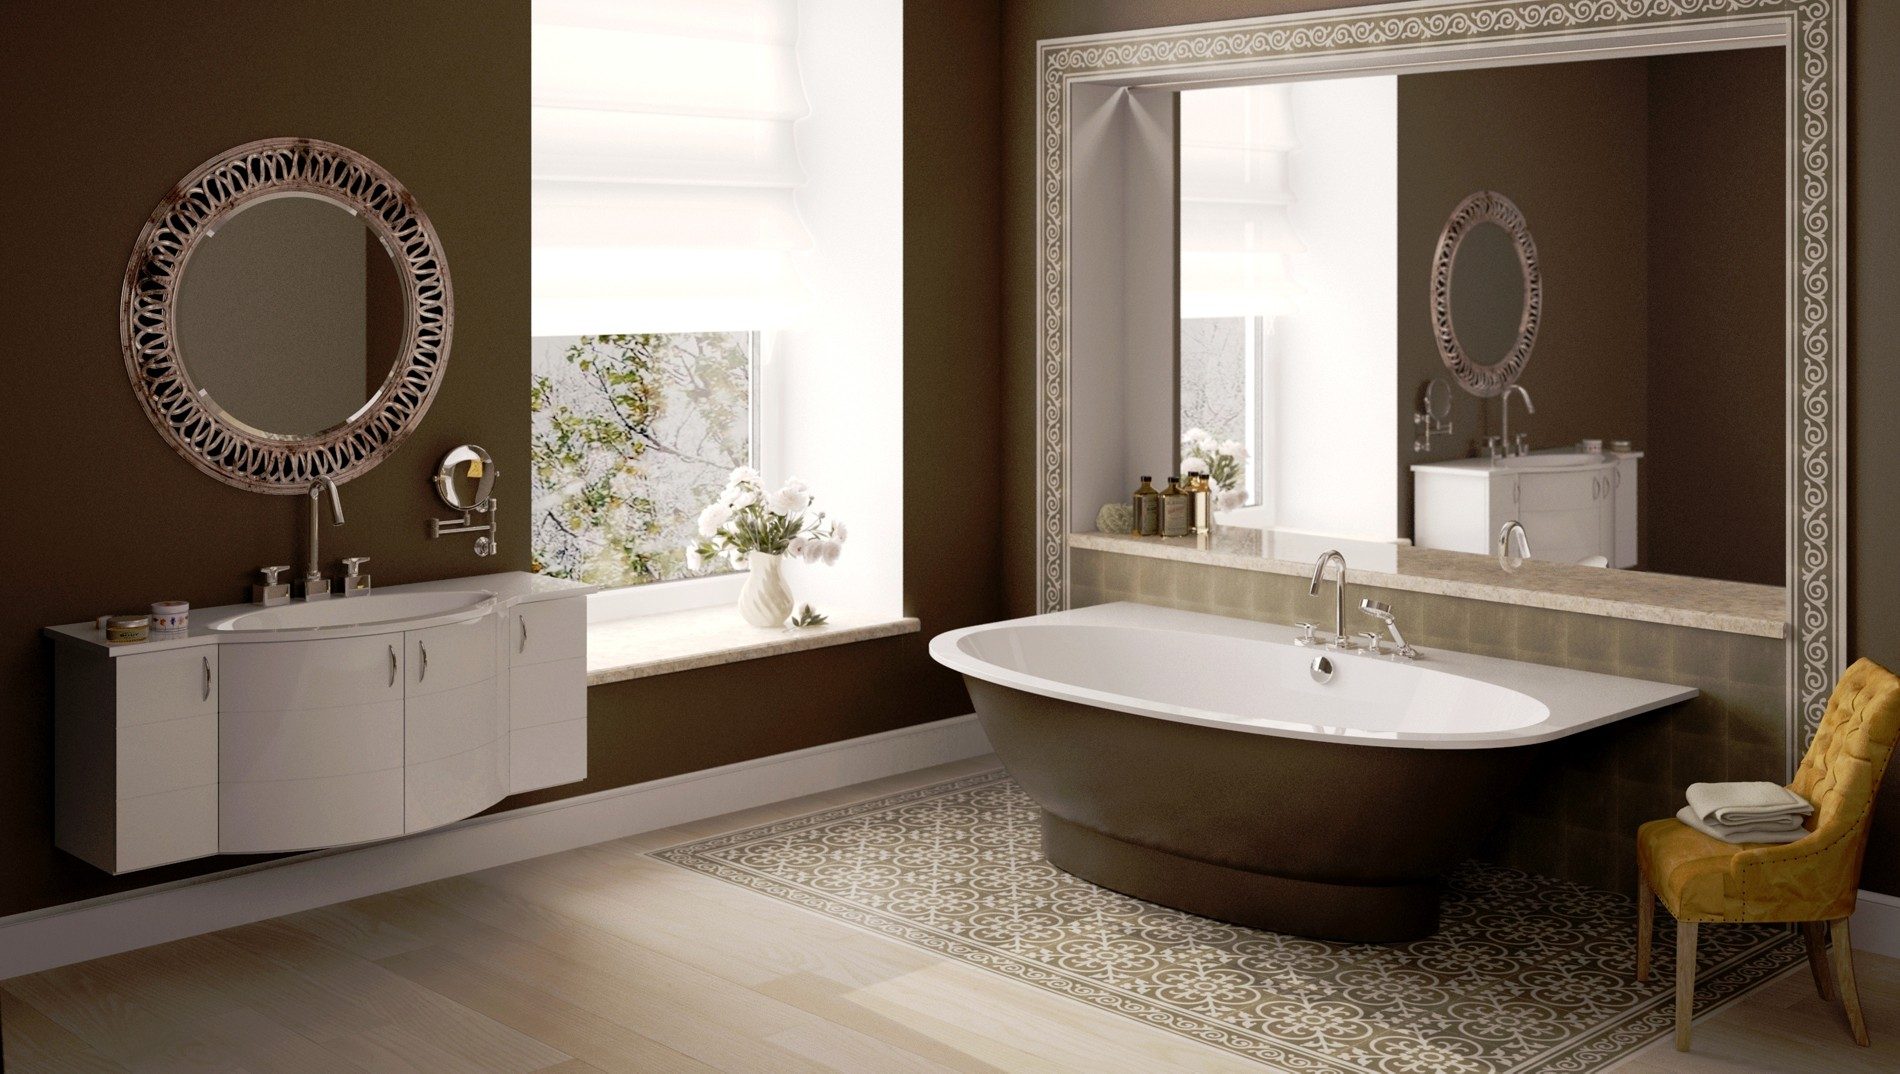 Cool Mirrors For Bathrooms 20 Bathroom Mirror Ideas To Reflect An Elegant Style